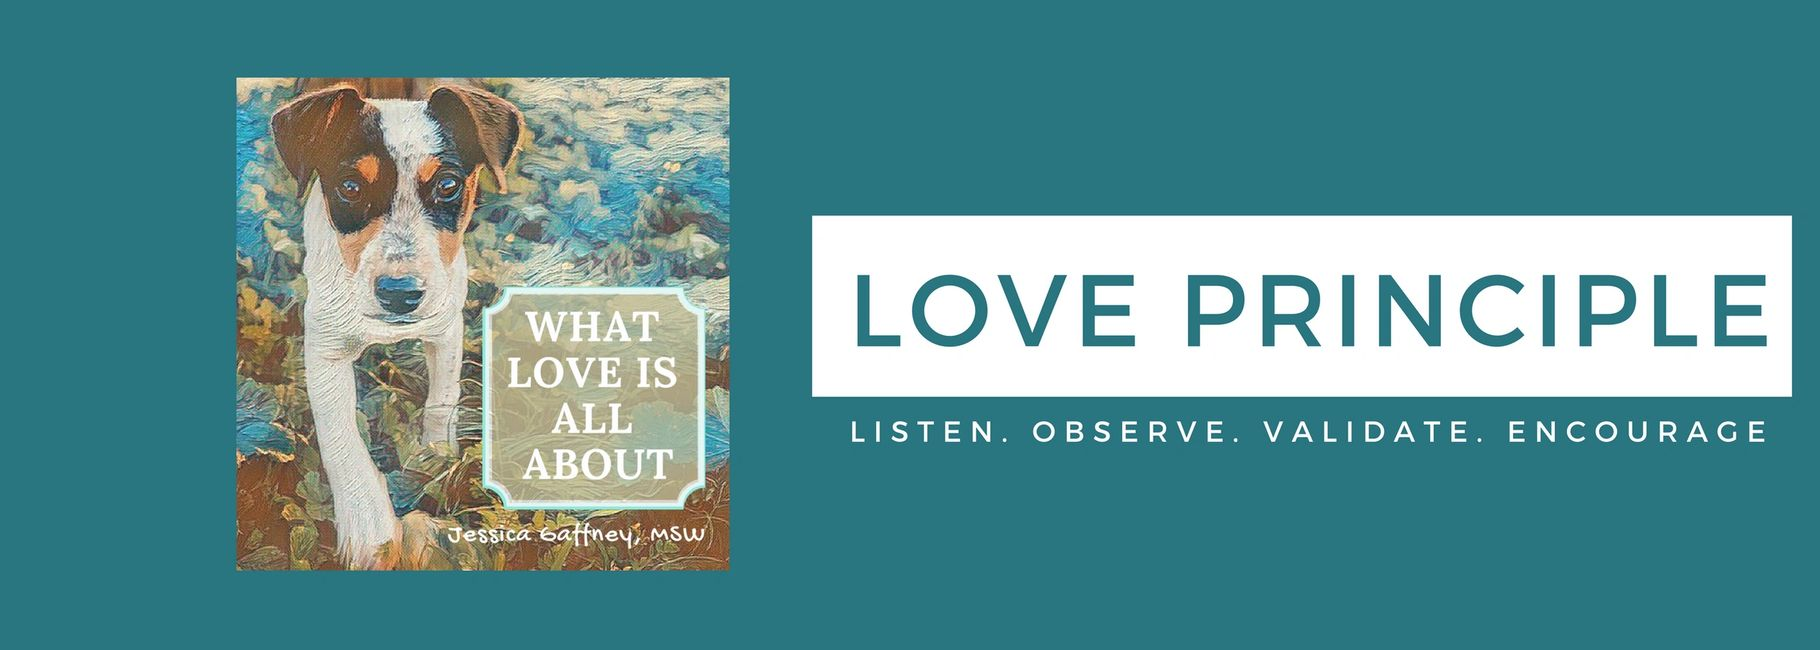 Jessica Gaffney, What Love is all about, Author Love Principle. Family counseling.